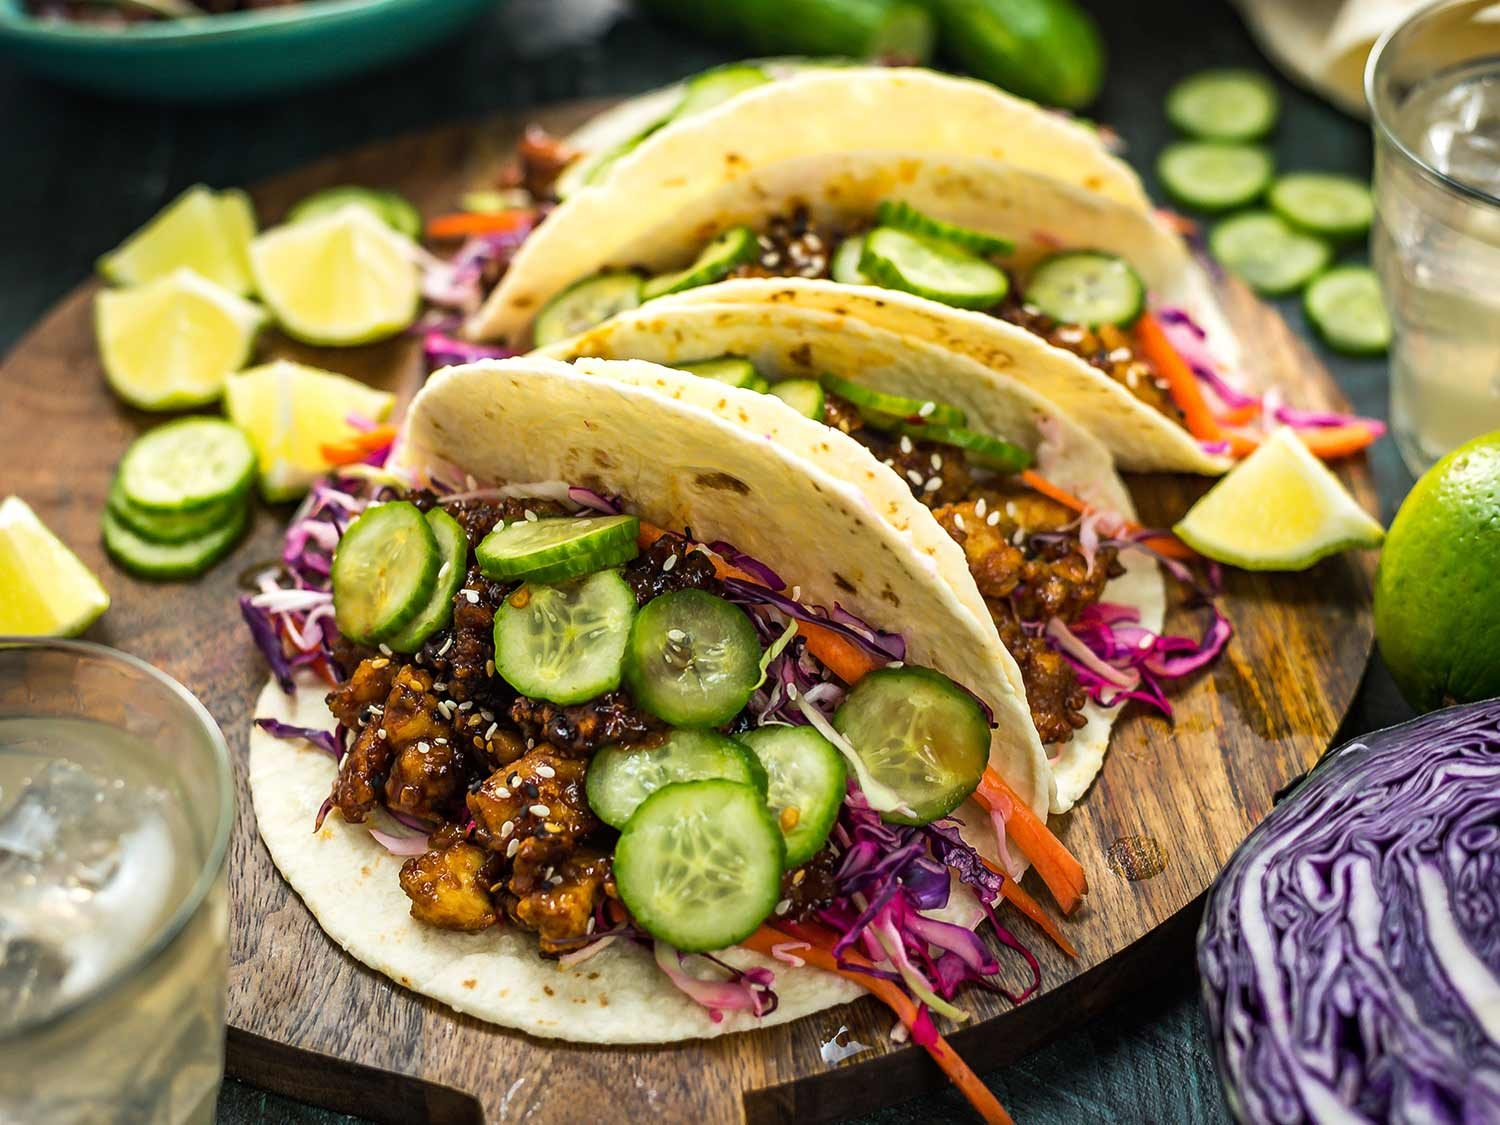 Korean-Inspired Crispy Tofu Tacos With Cabbage-Lime Slaw